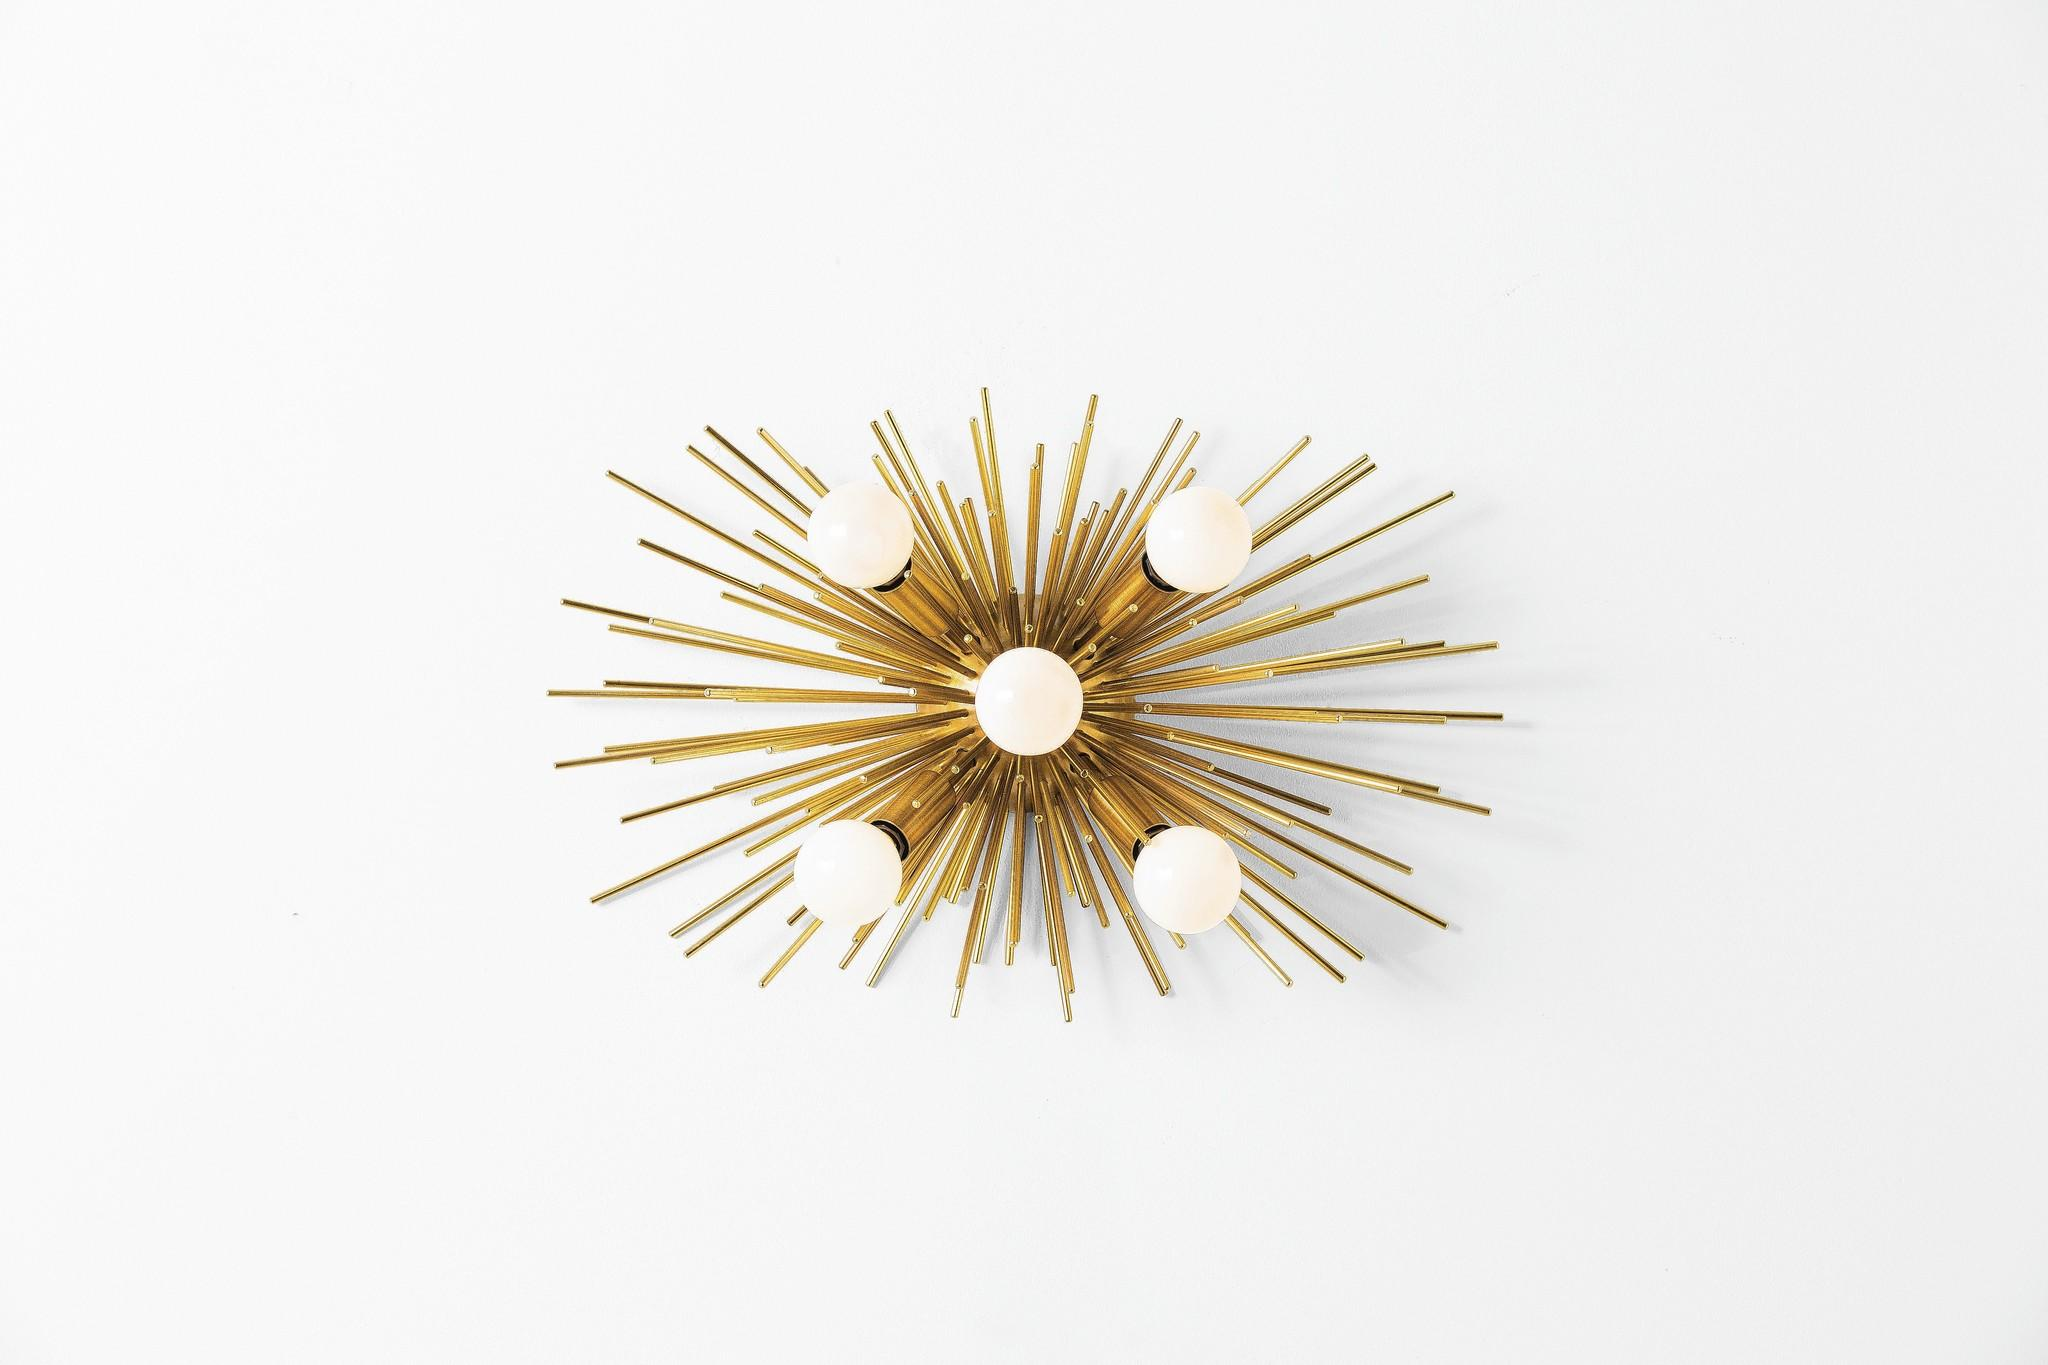 This brass wall sconce from arteriors makes a bold statement.